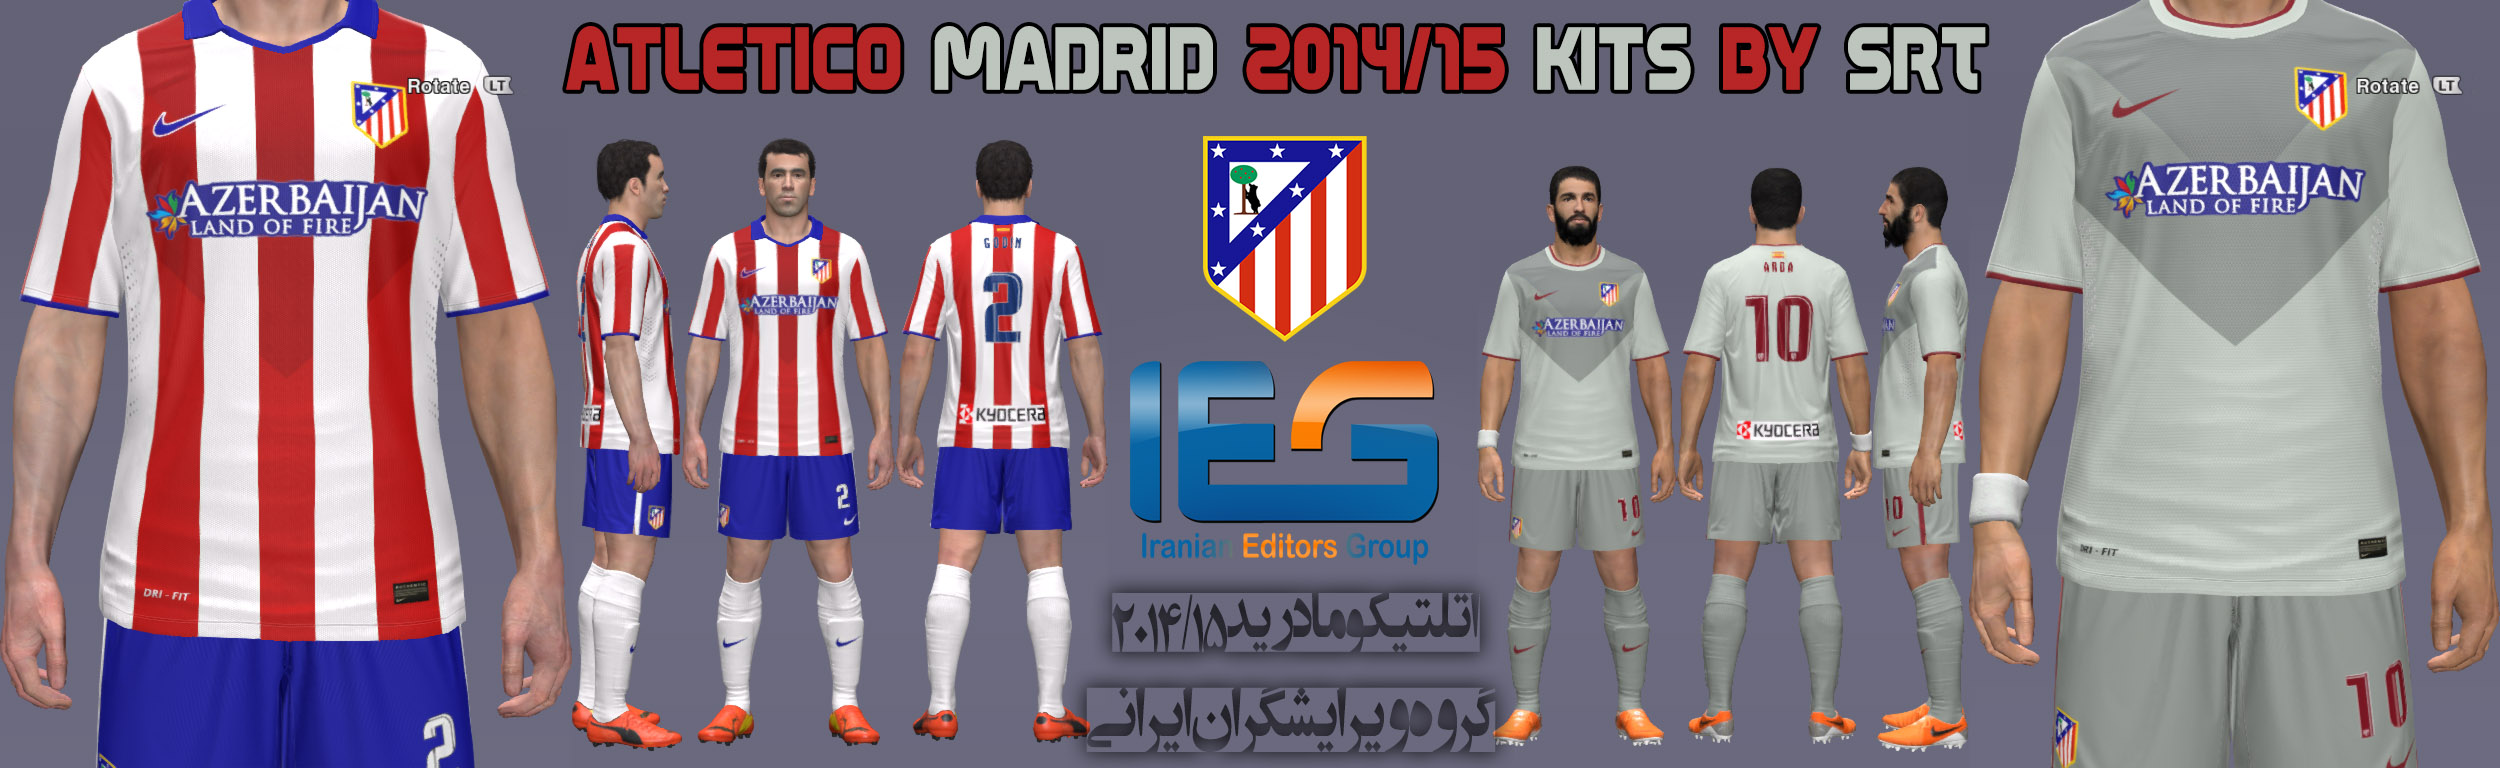 fa9719248 PES 2013 Copenaghen 2014. Pin Kit Atletico Madrid Photo Shared By Whitney  Fans Share